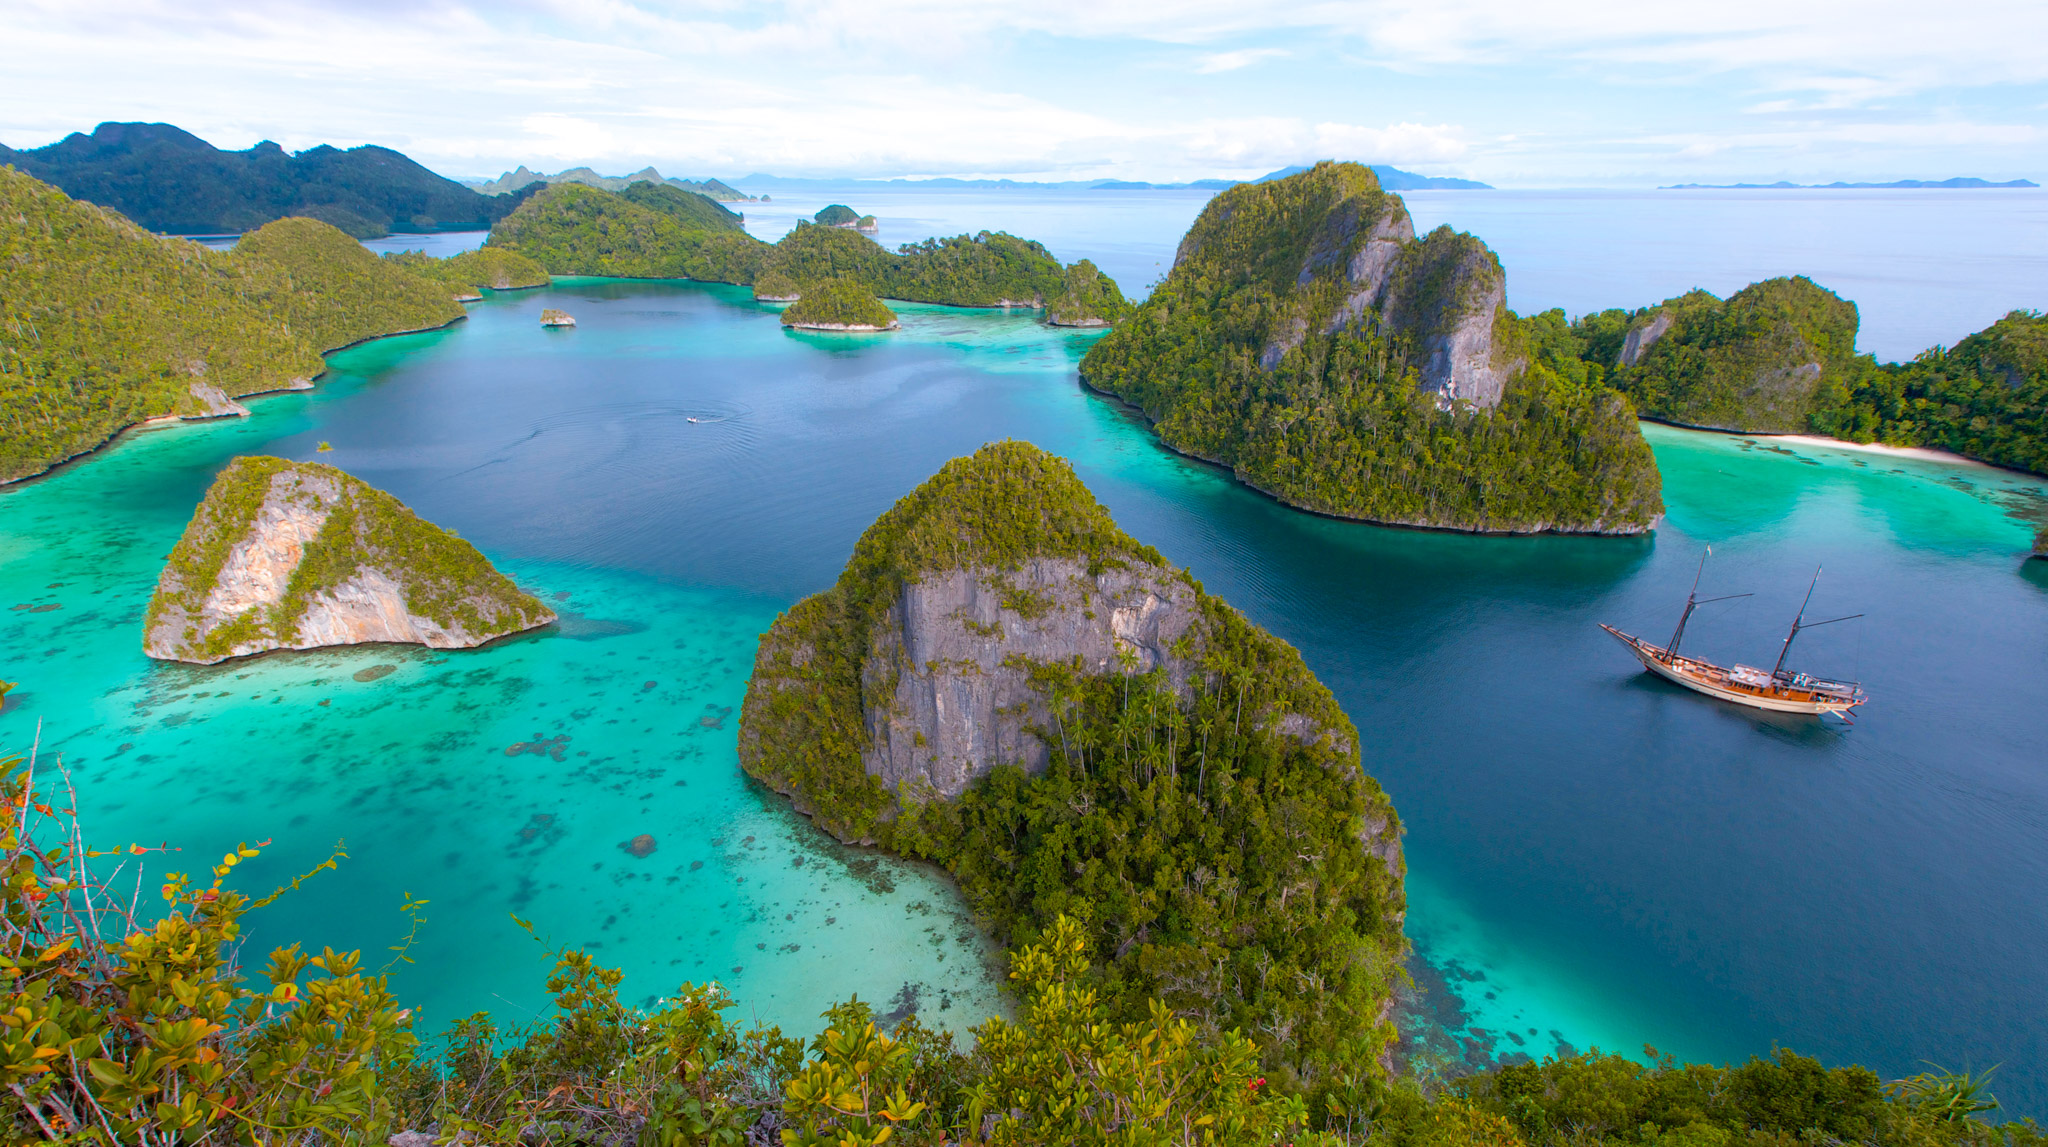 aerial shot of the islands of Raja Ampat with turquoise waters and luxury phinisi yacht Silolona at anchor